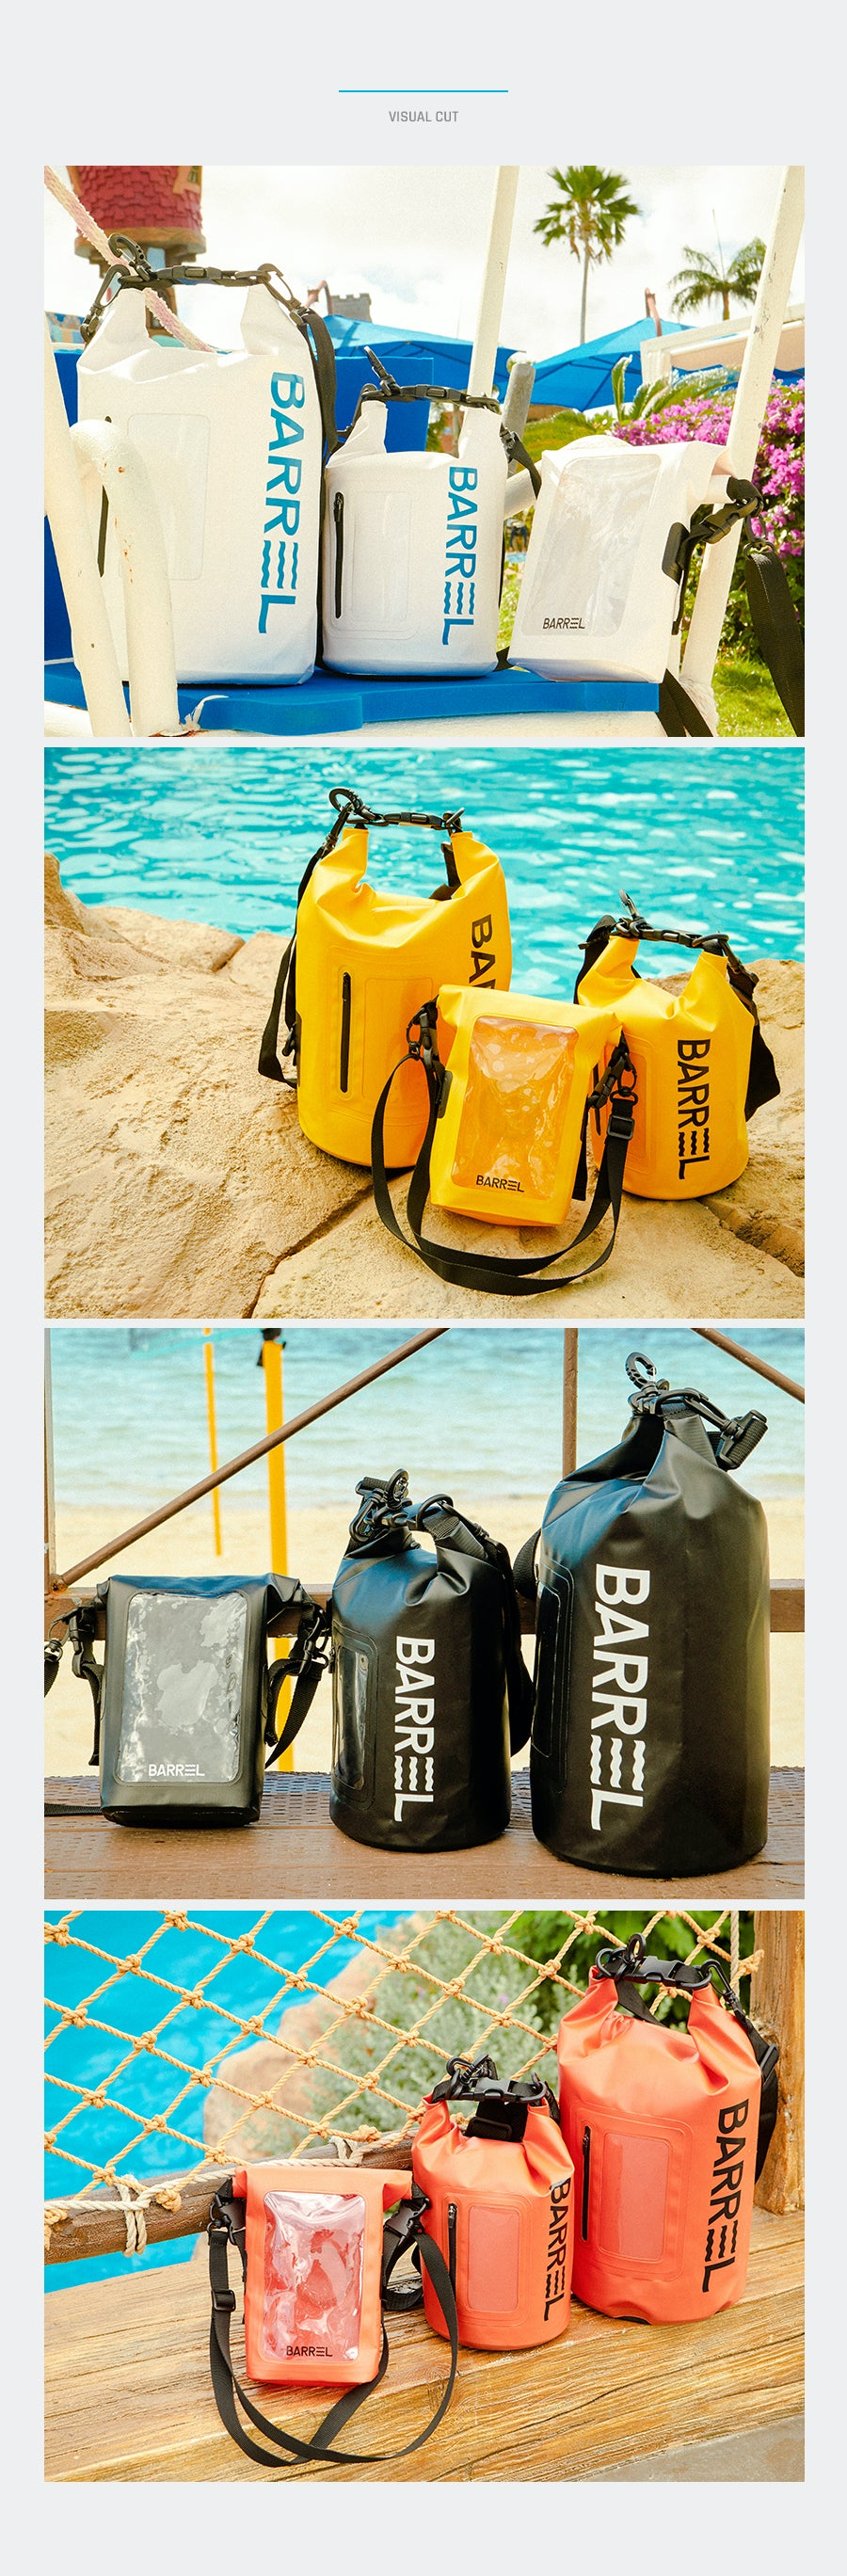 Barrel Dry Bag 10L-MARINA_image2